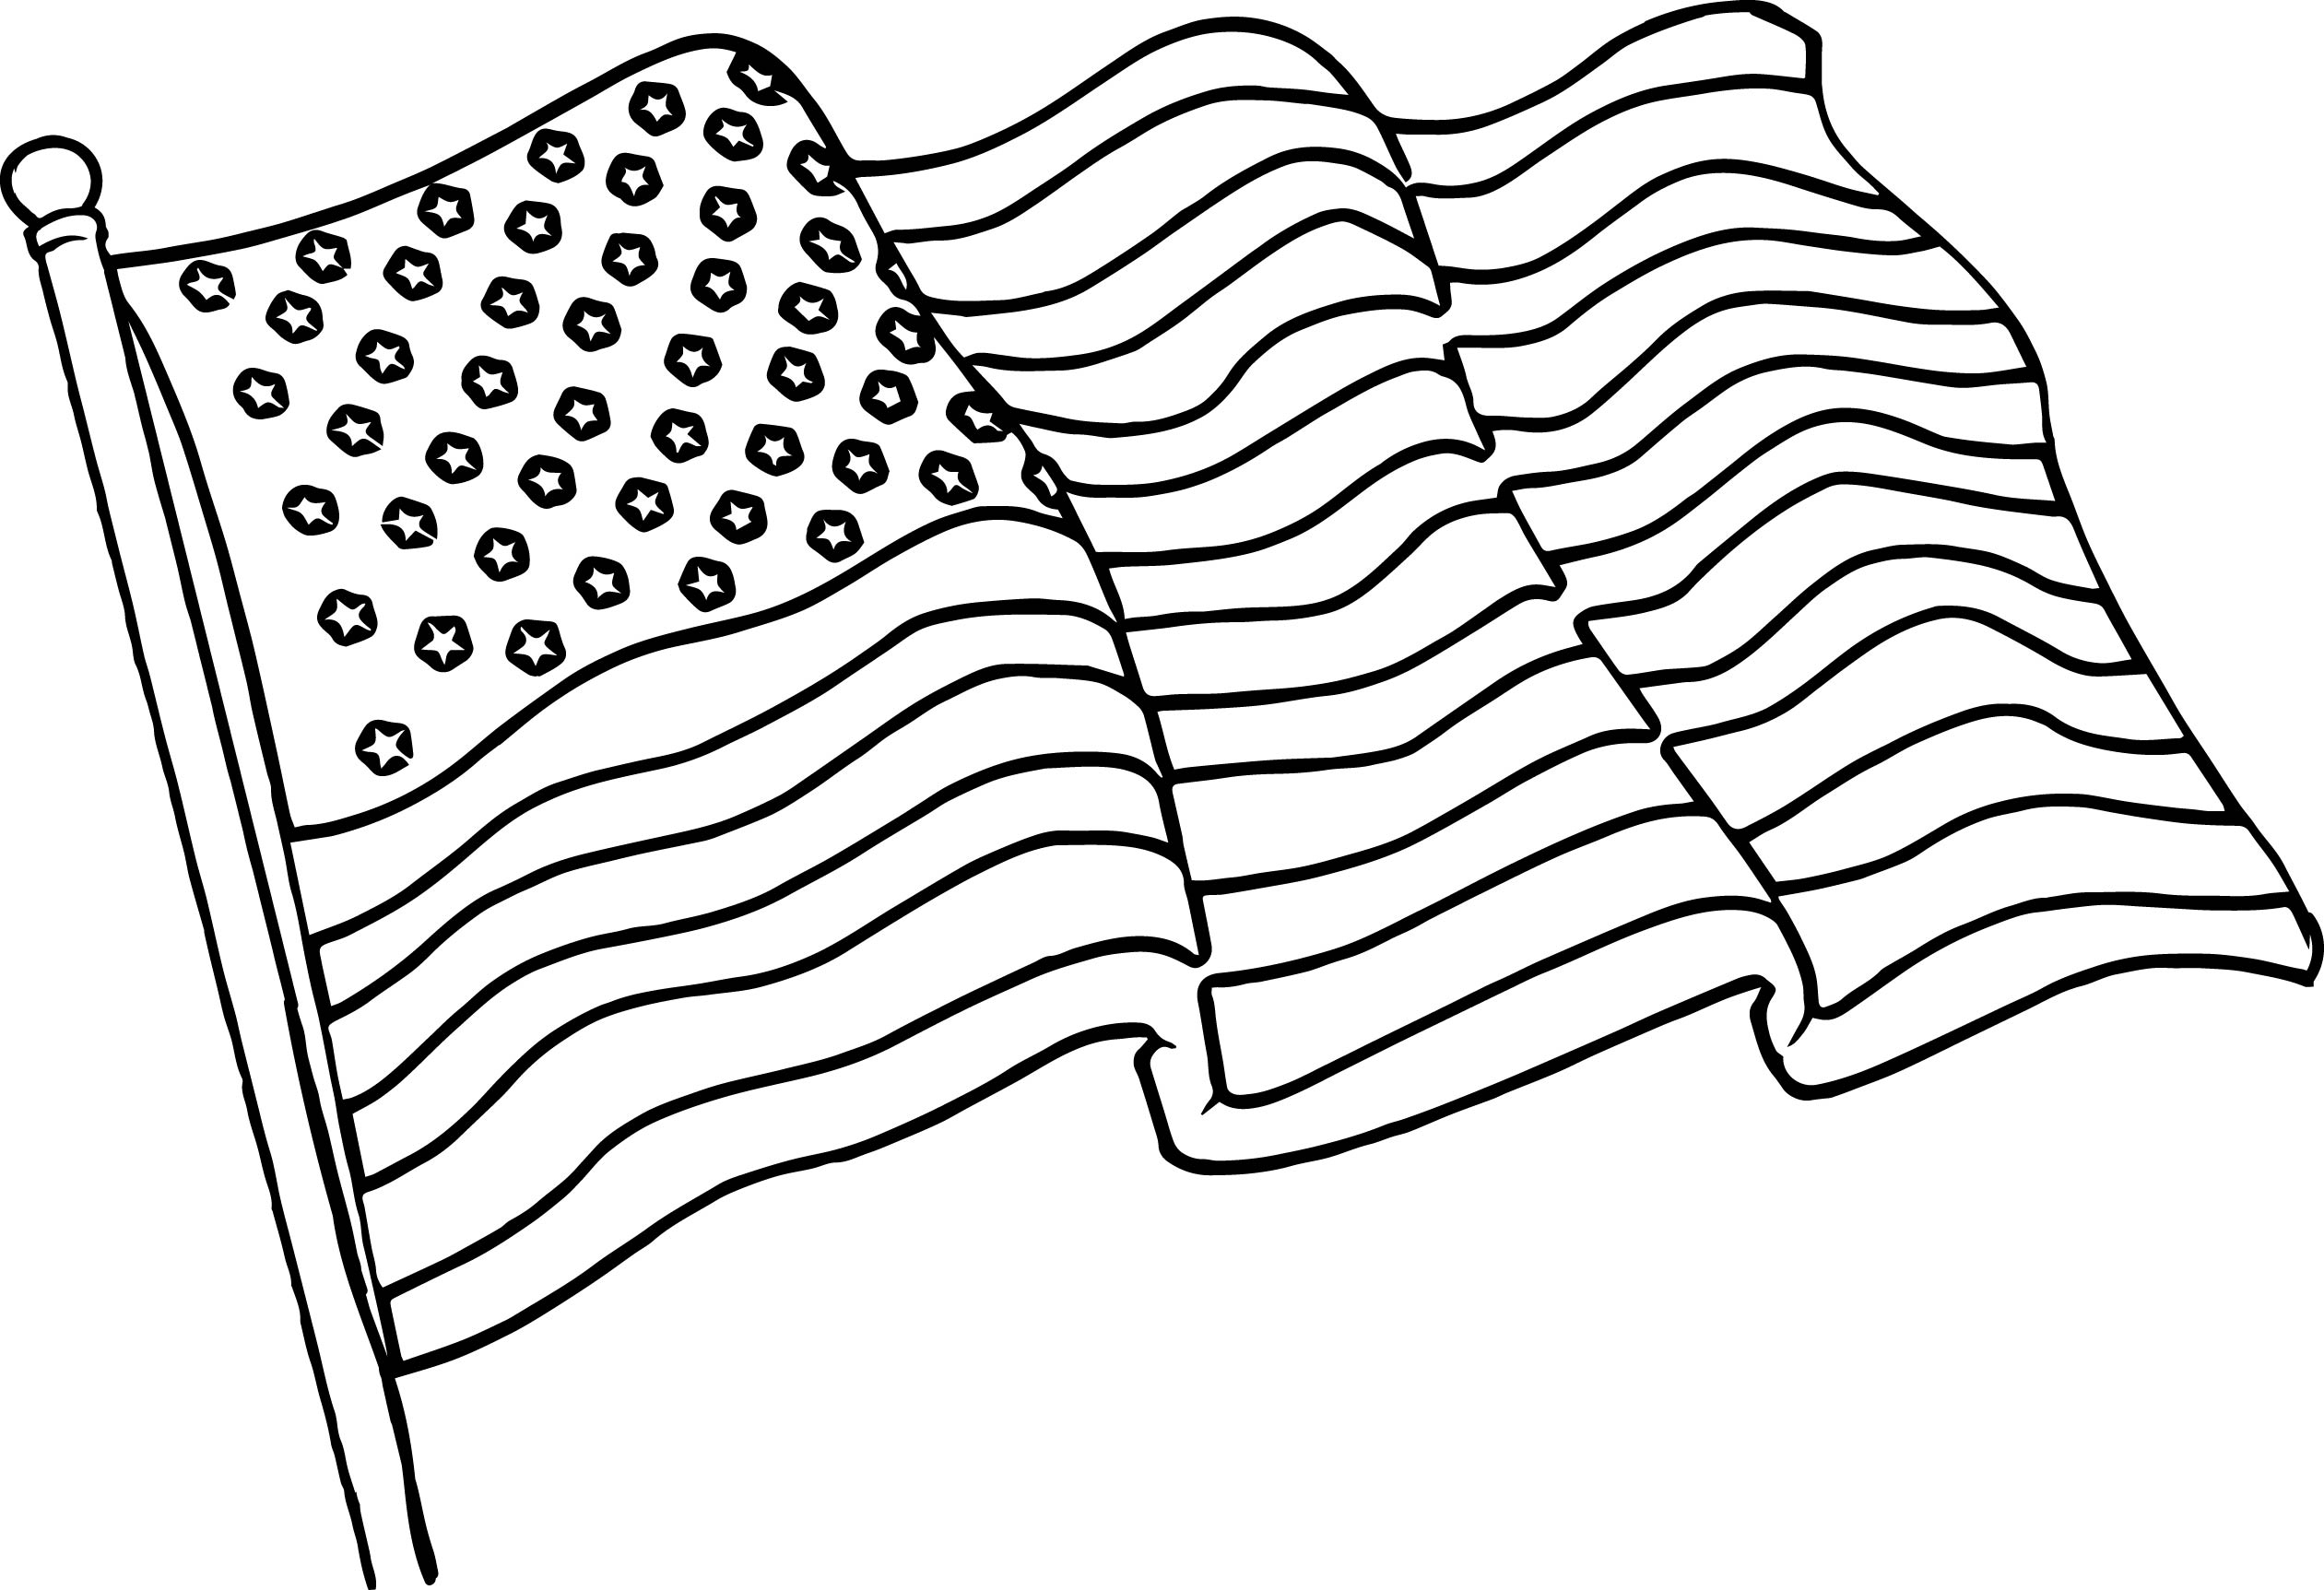 coloring sheet usa flag coloring page american flag coloring pages best coloring pages for kids coloring flag page coloring usa sheet